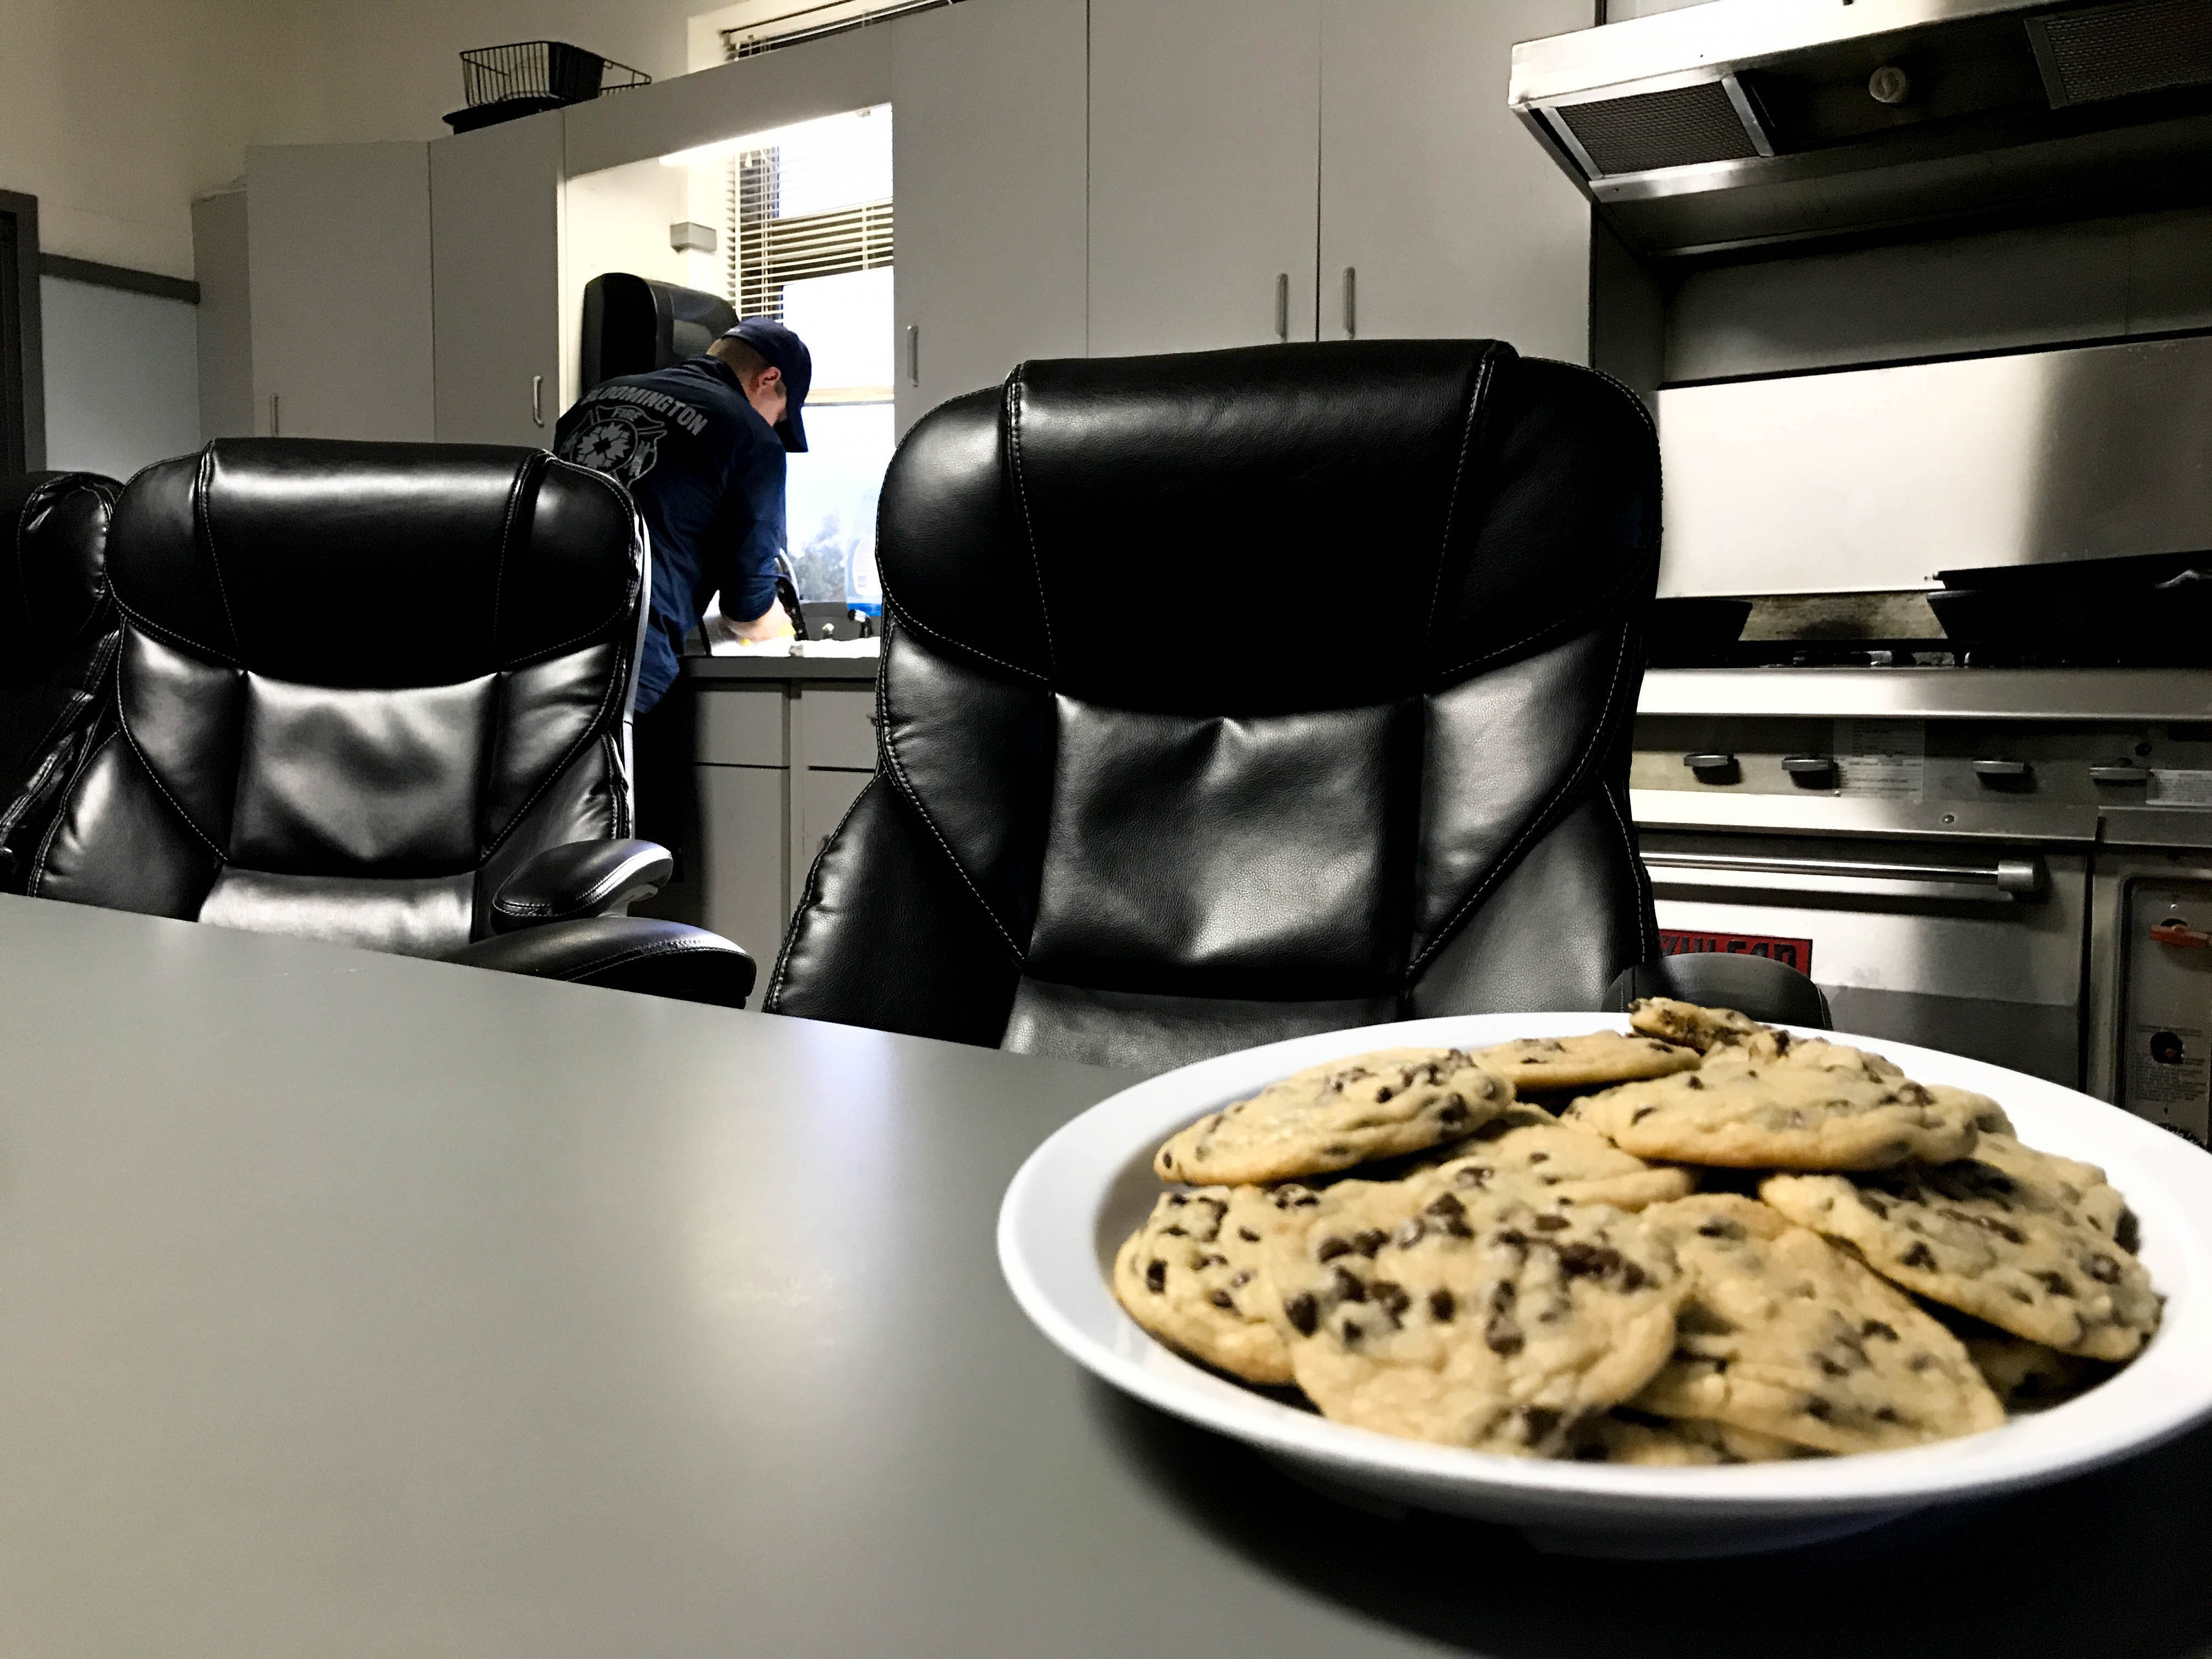 A plate of chocolate chip cookies sits on the kitchen table at the Bloomington Fire Department Headquarters.